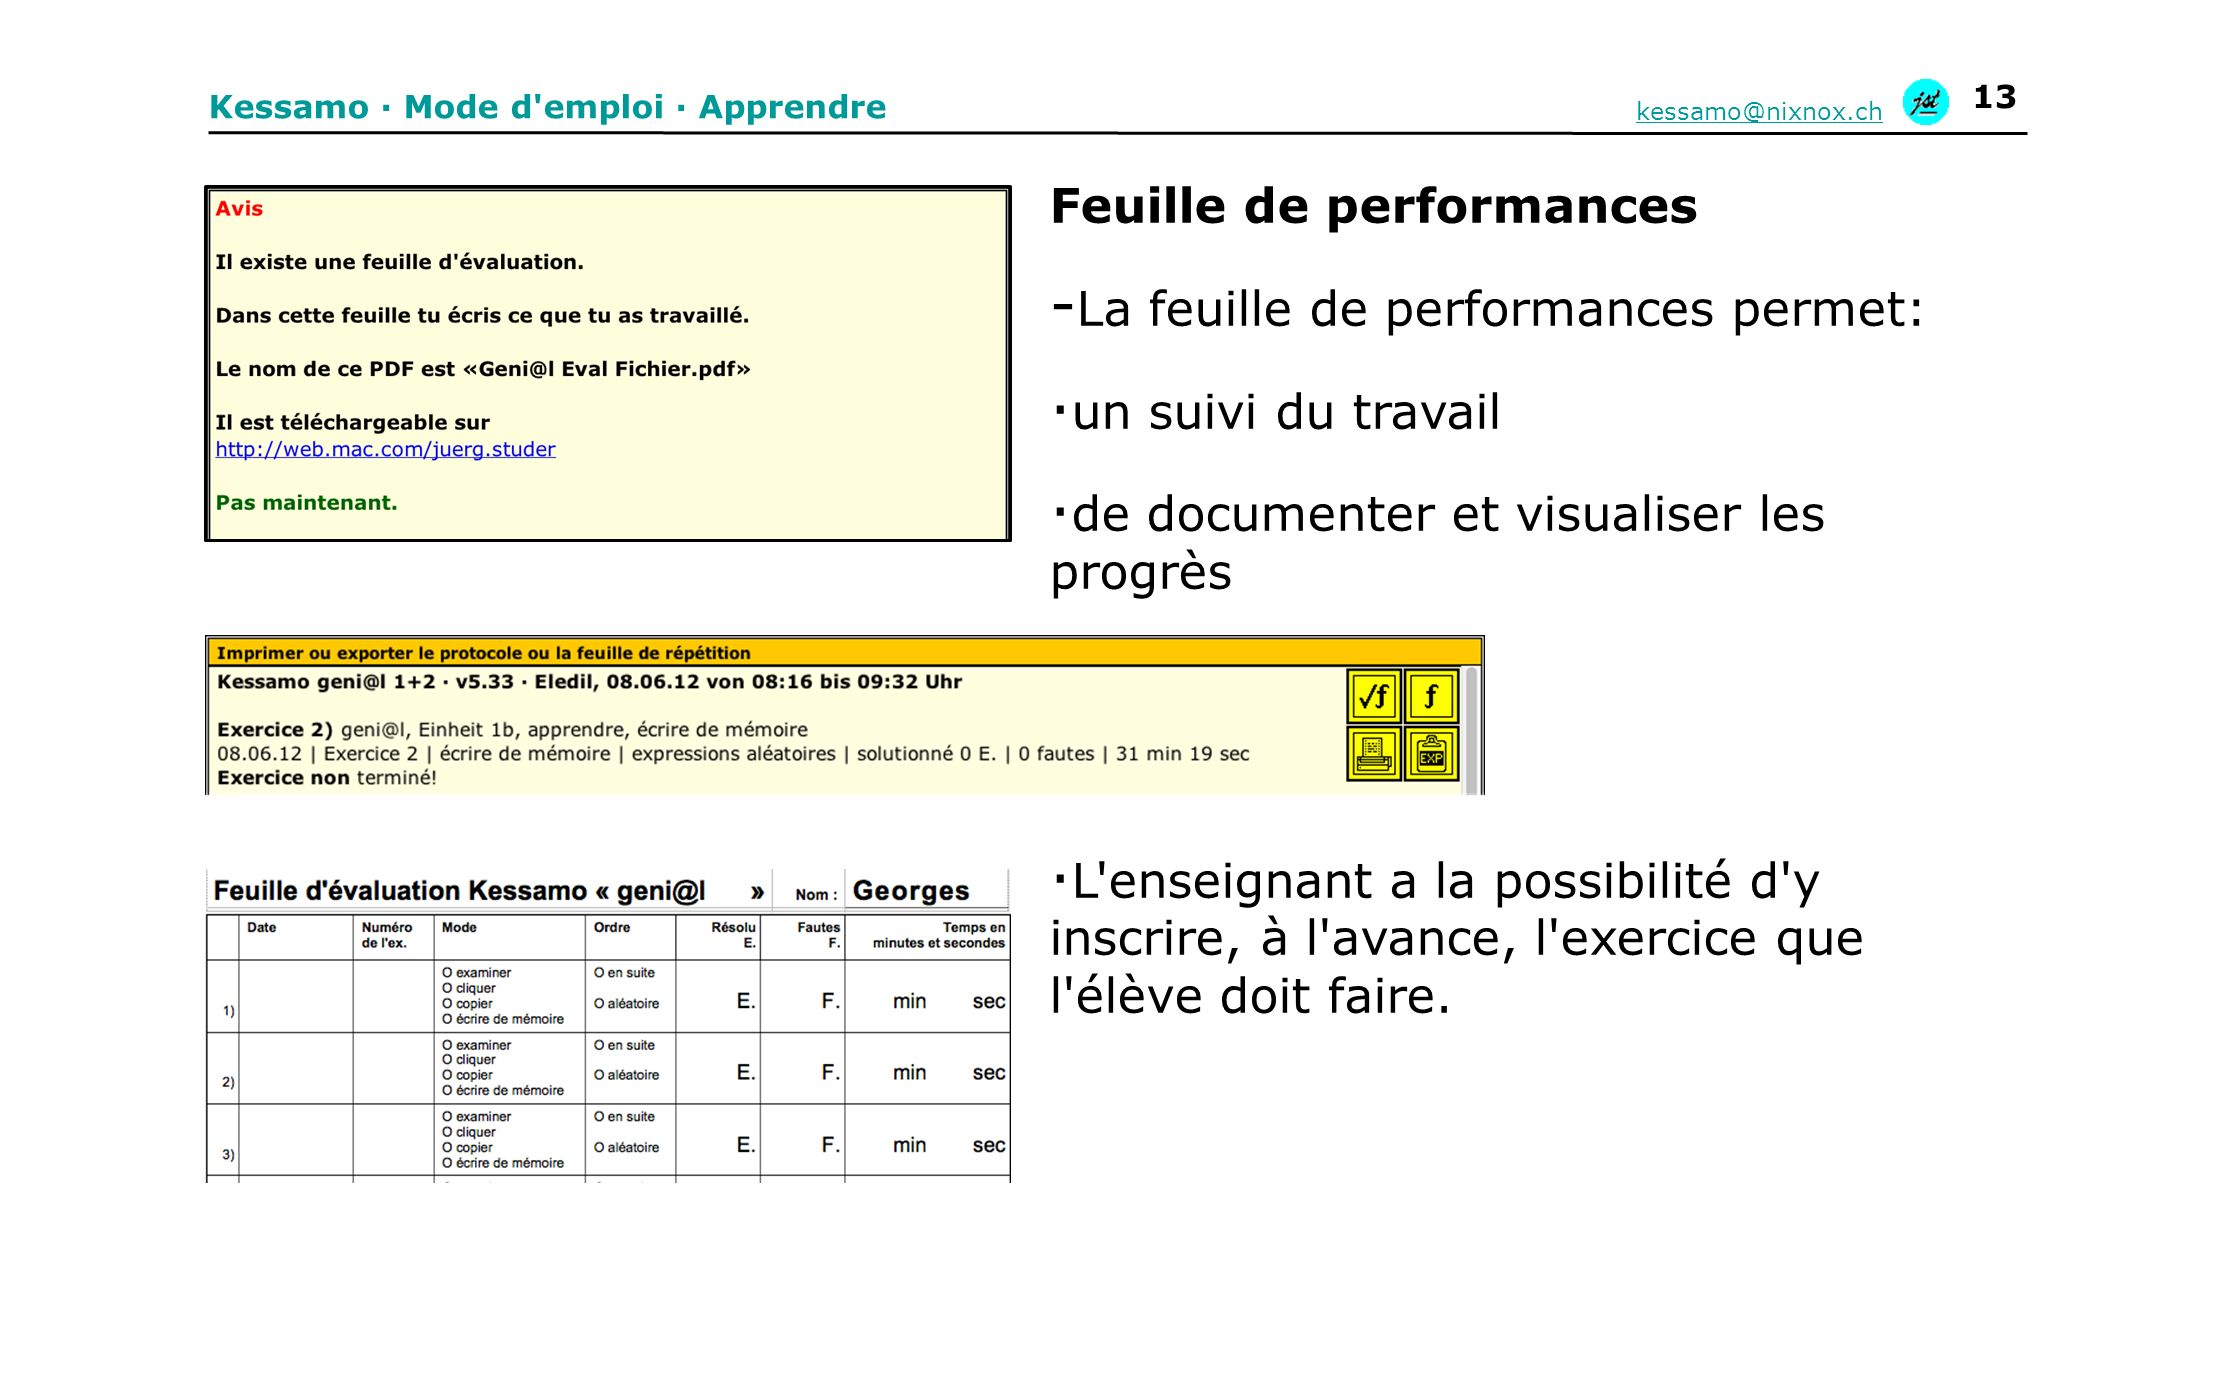 Feuille de performances La feuille de performances permet: